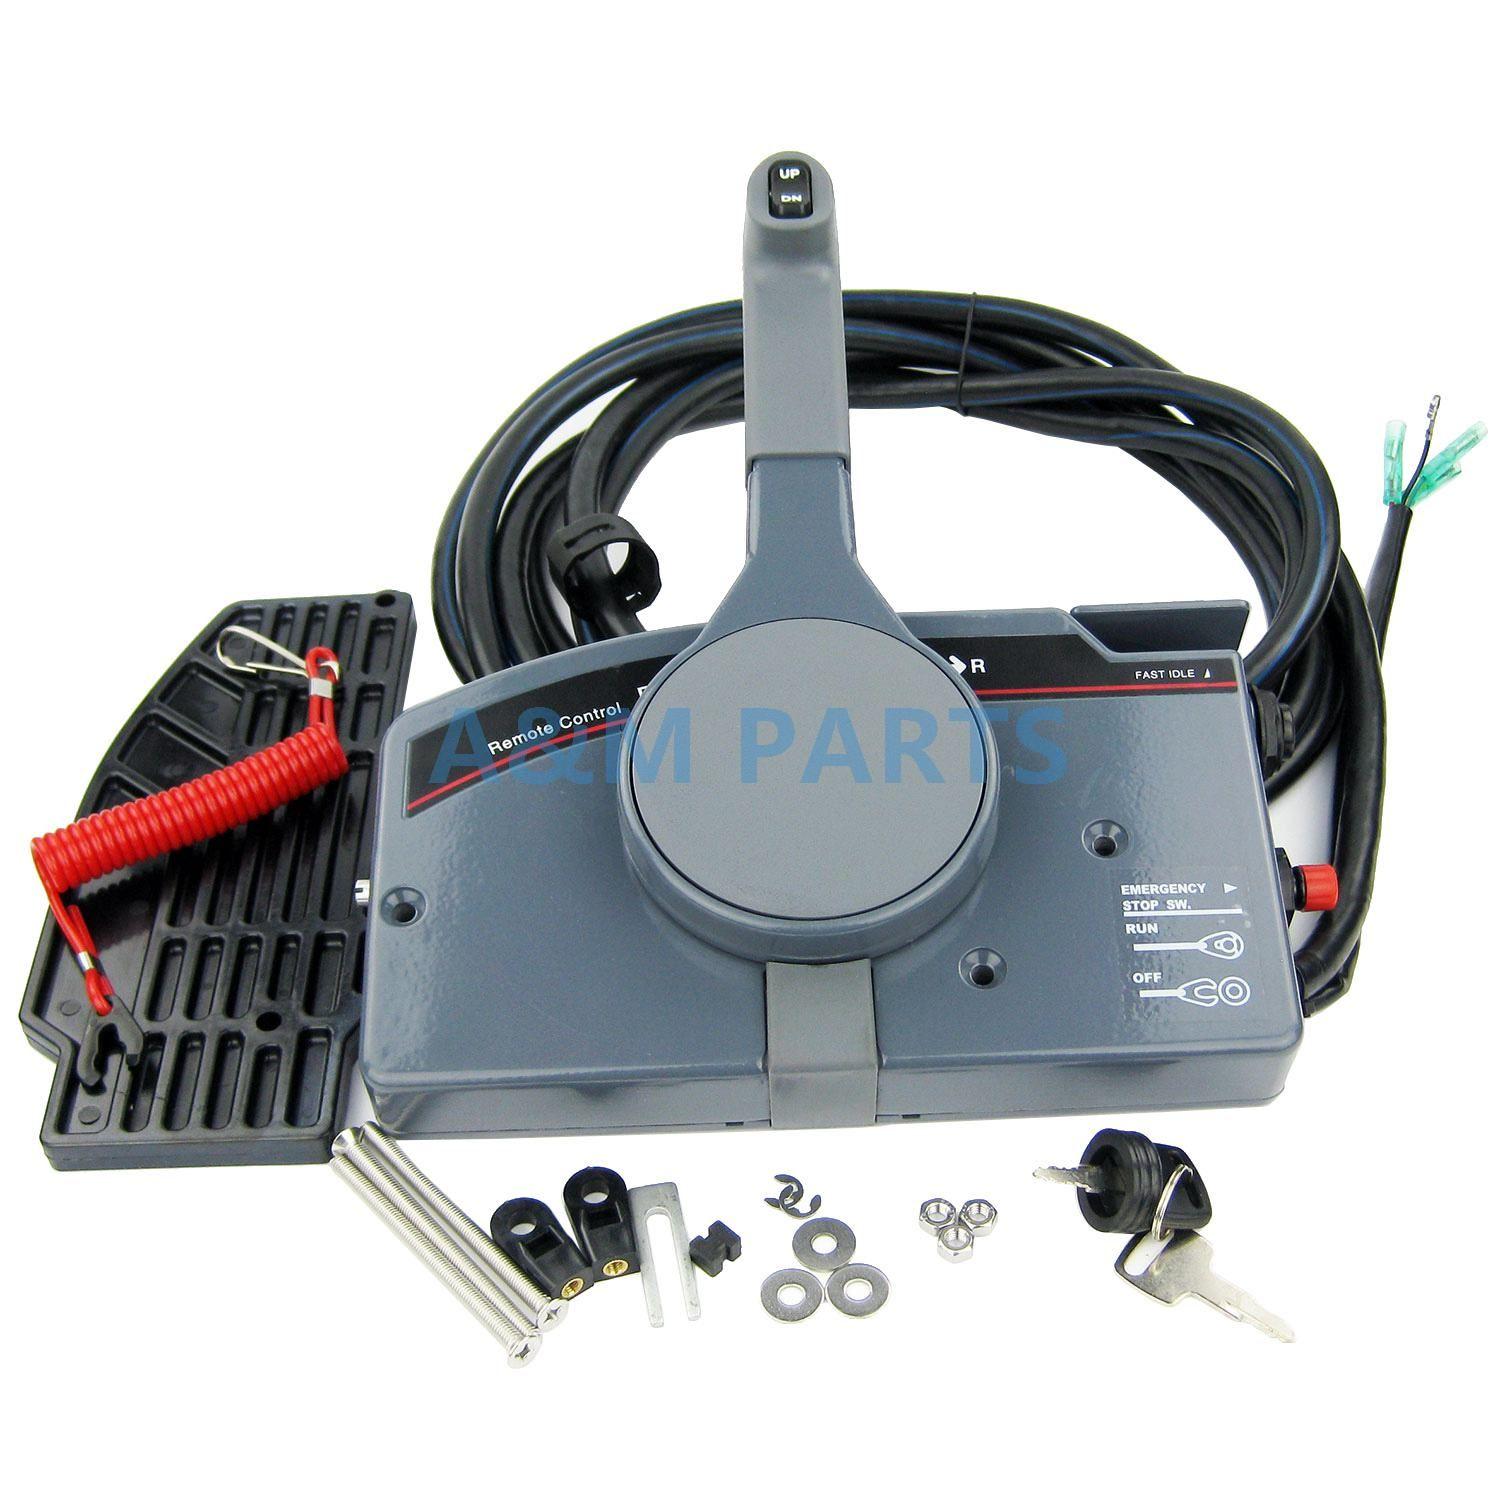 Outboard Remote Control Box for Yamaha Boat Engine Right Side Mount With 10 Pin Cable PULL Throttle